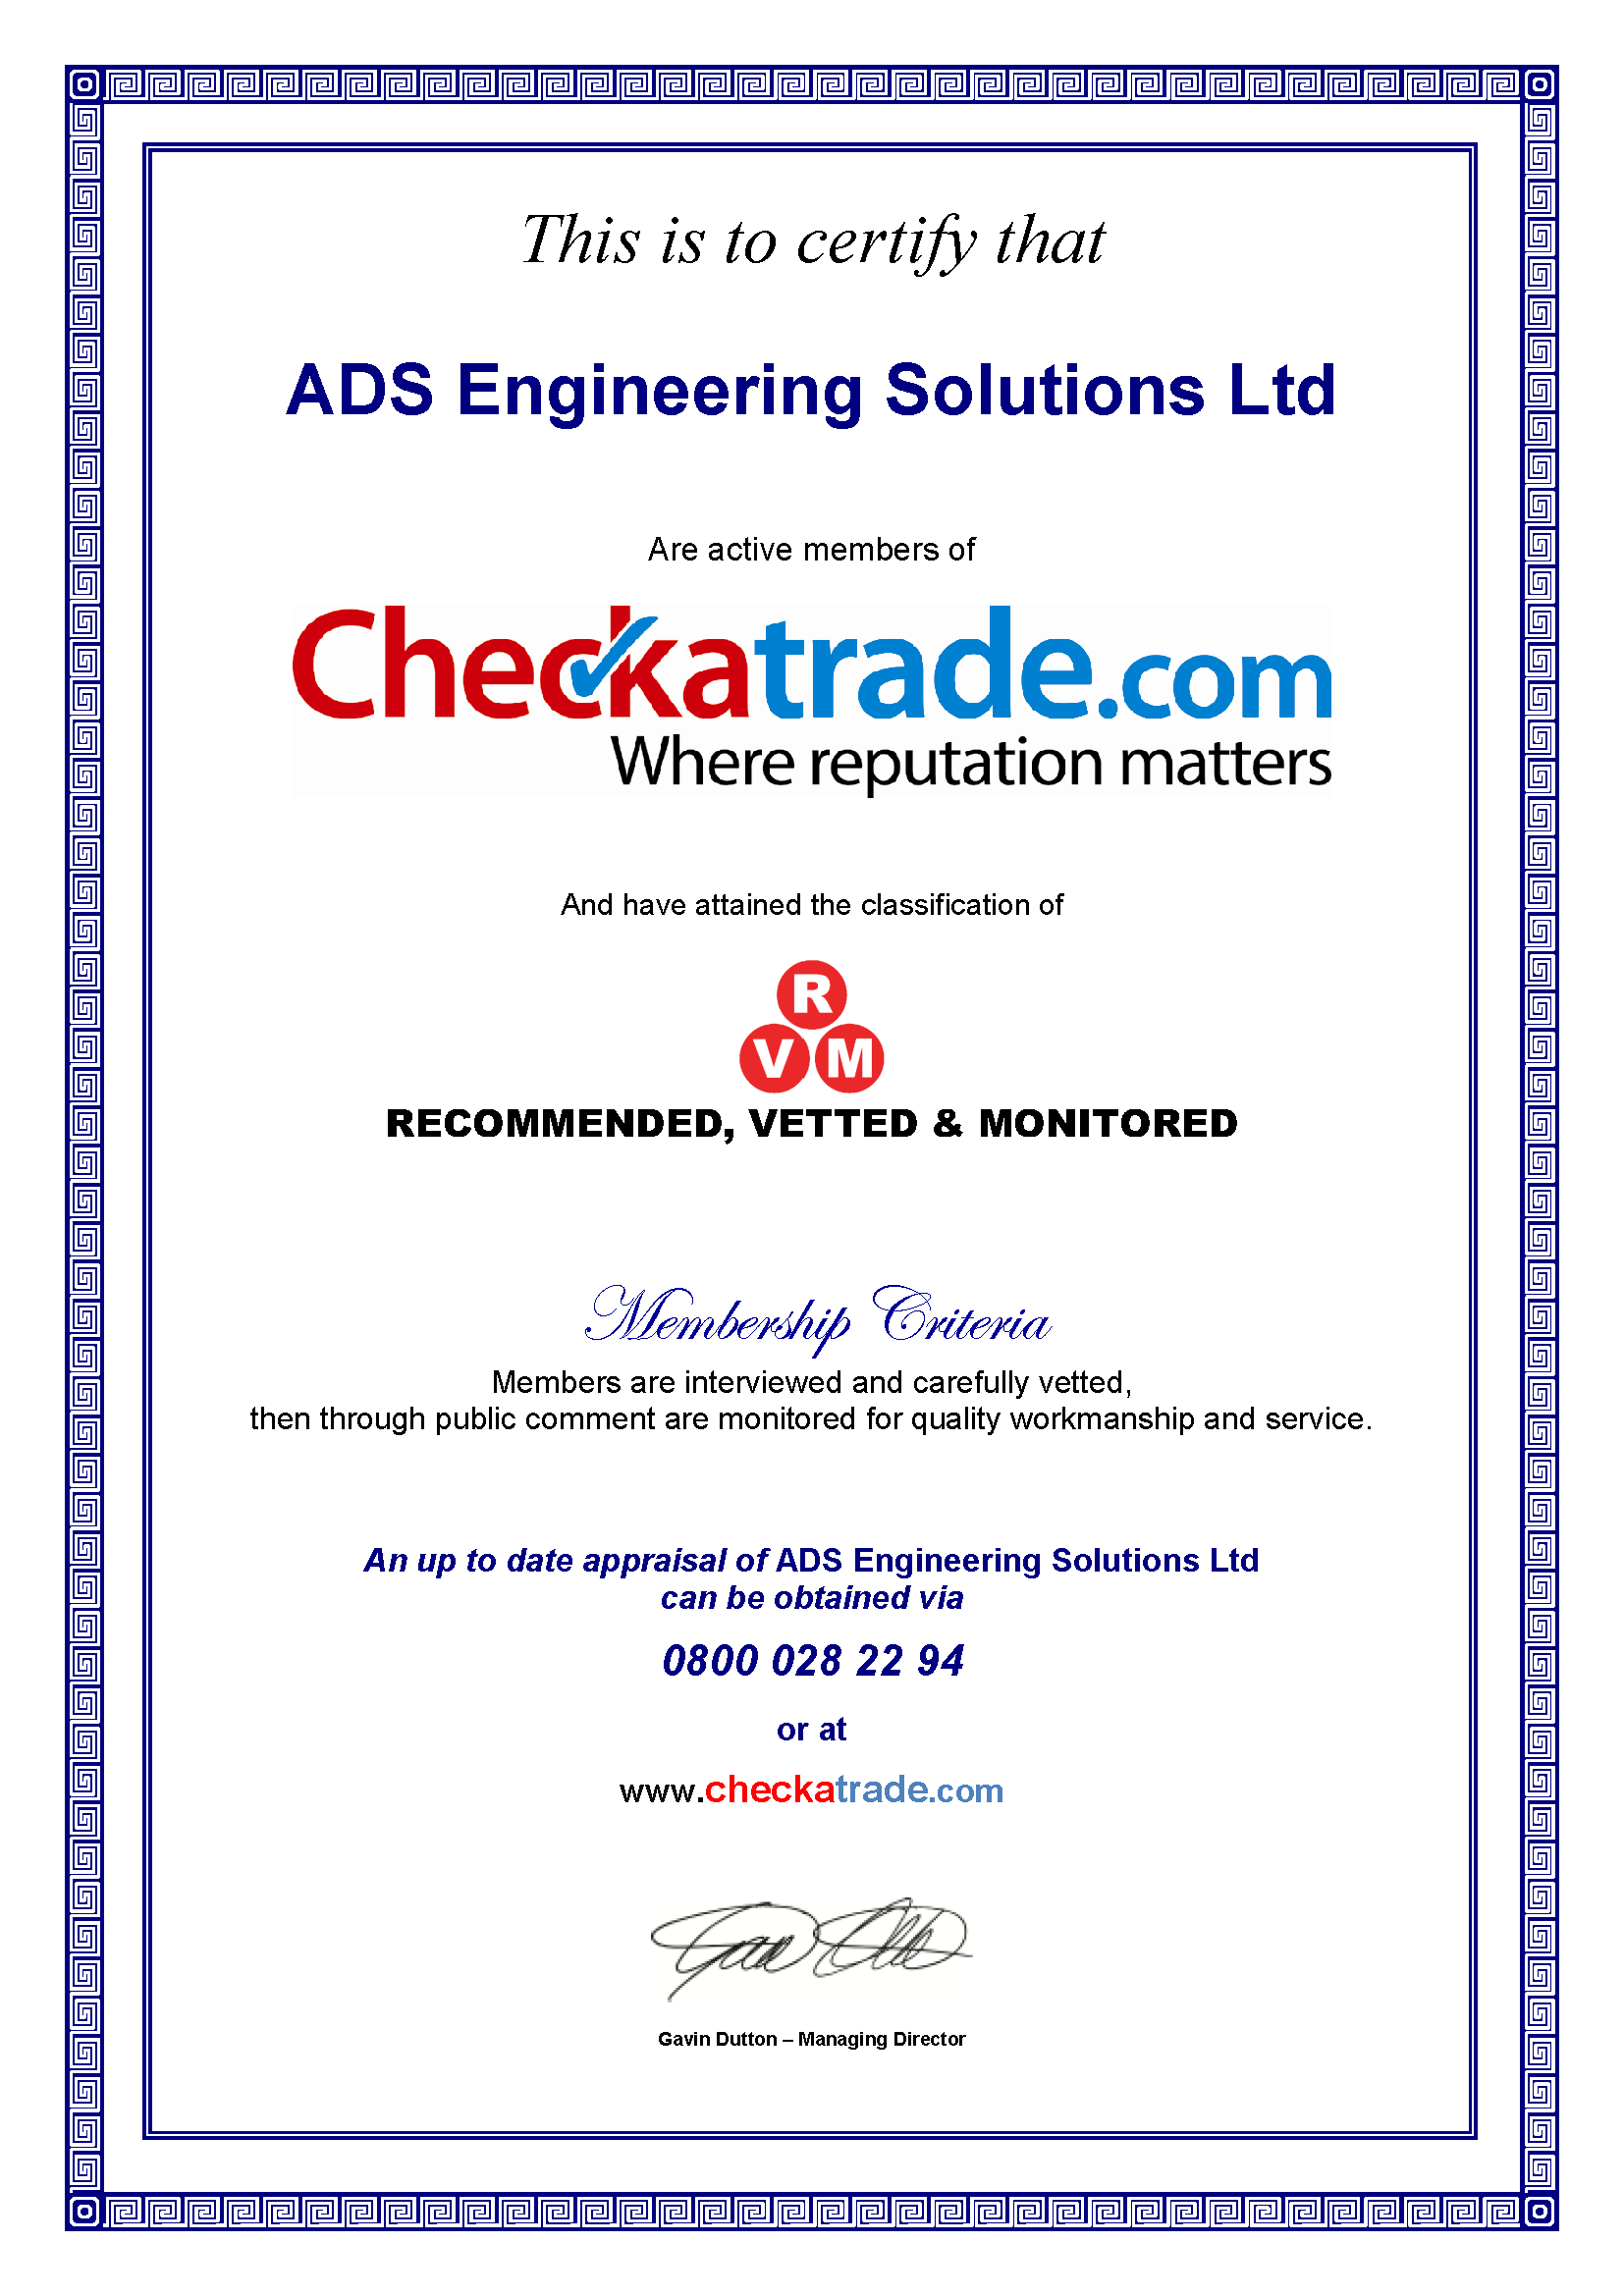 Checkatrade certificate for ADS Plumbing, Bath.